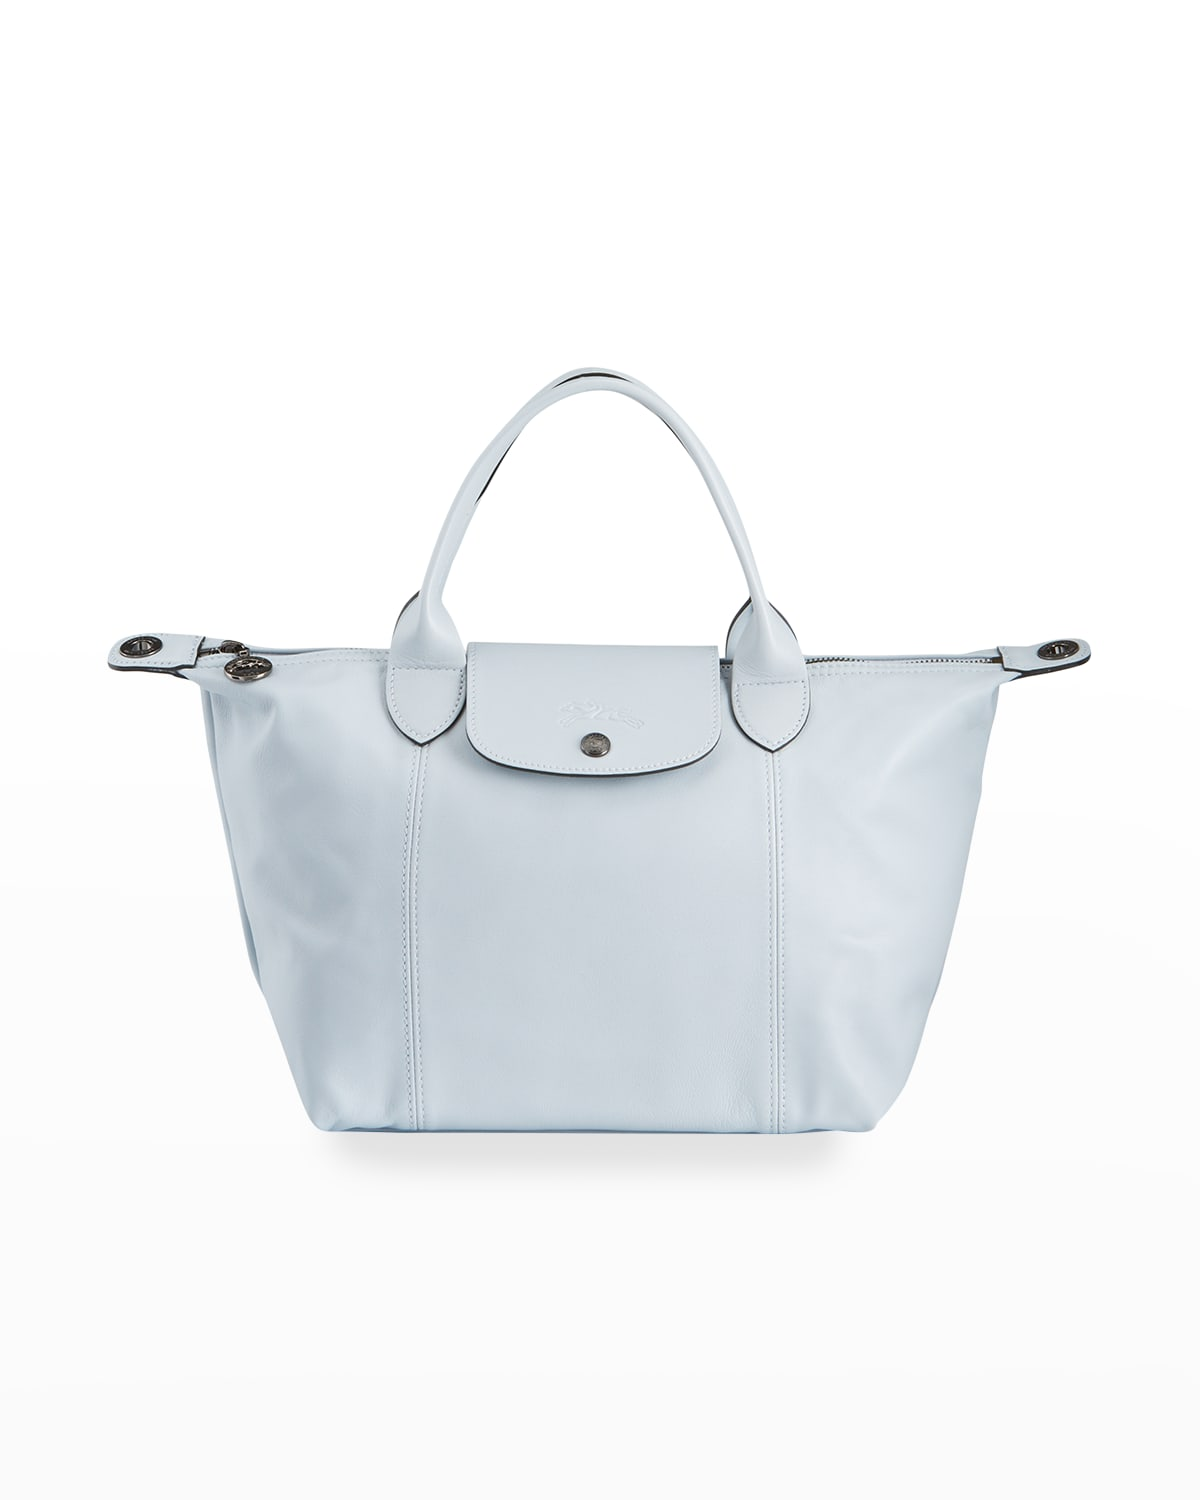 Le Pliage Cuir Small Leather Tote Bag